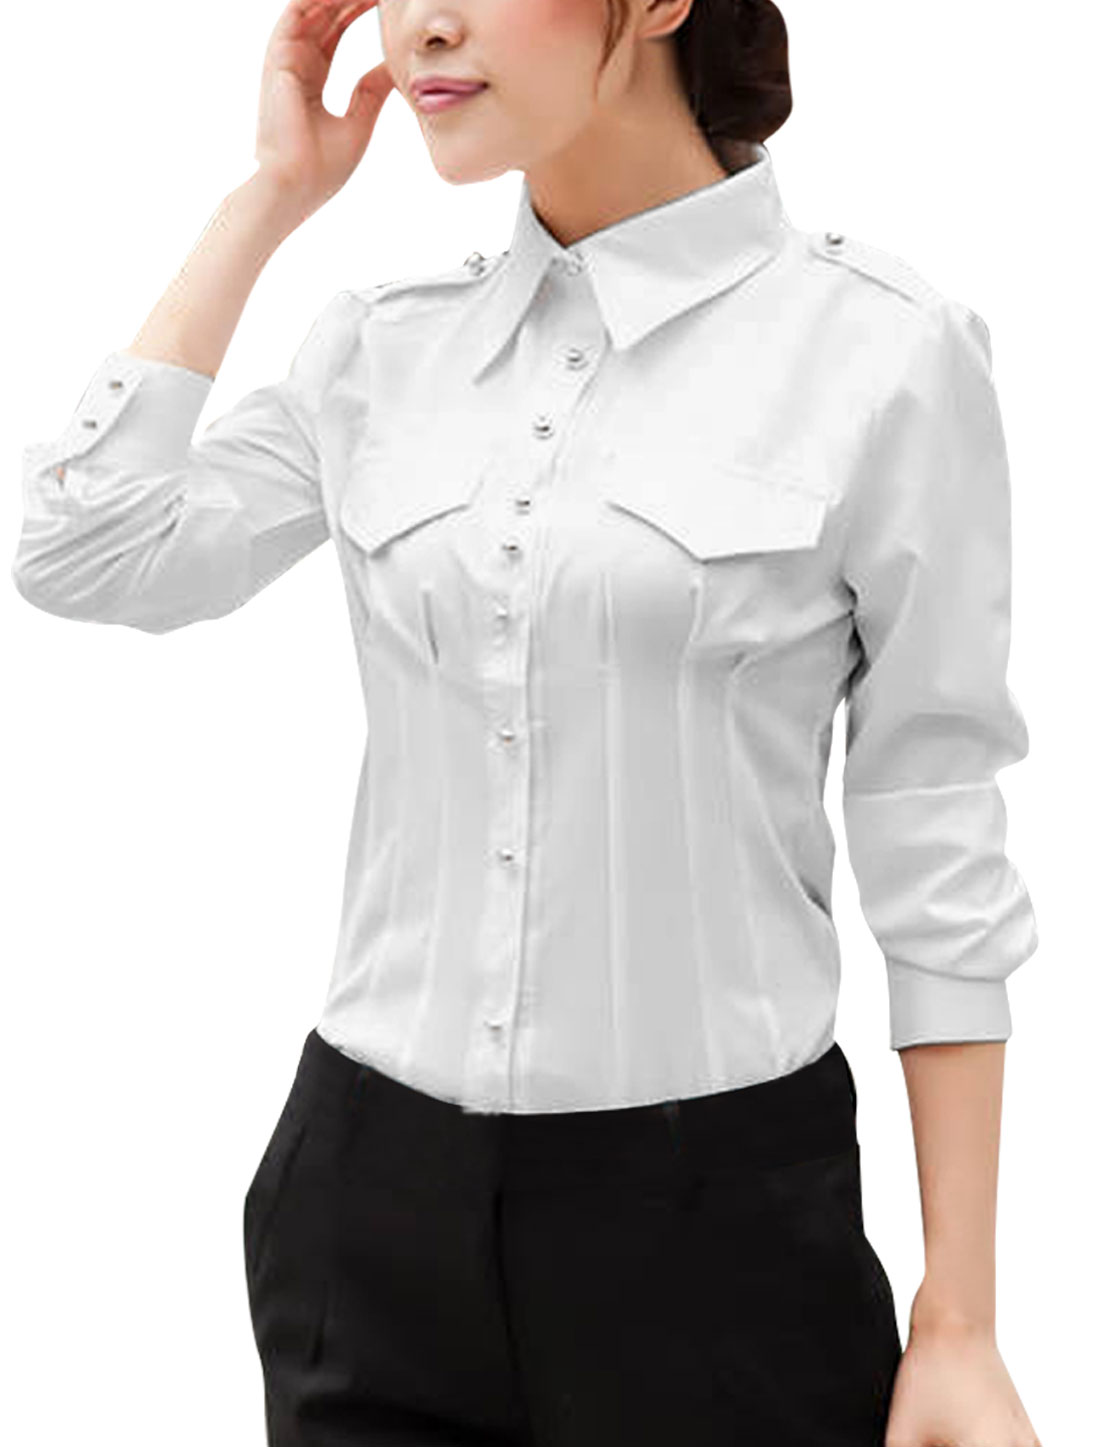 Women Single Breasted Fake Chest Pockets Leisure Shirt White XS